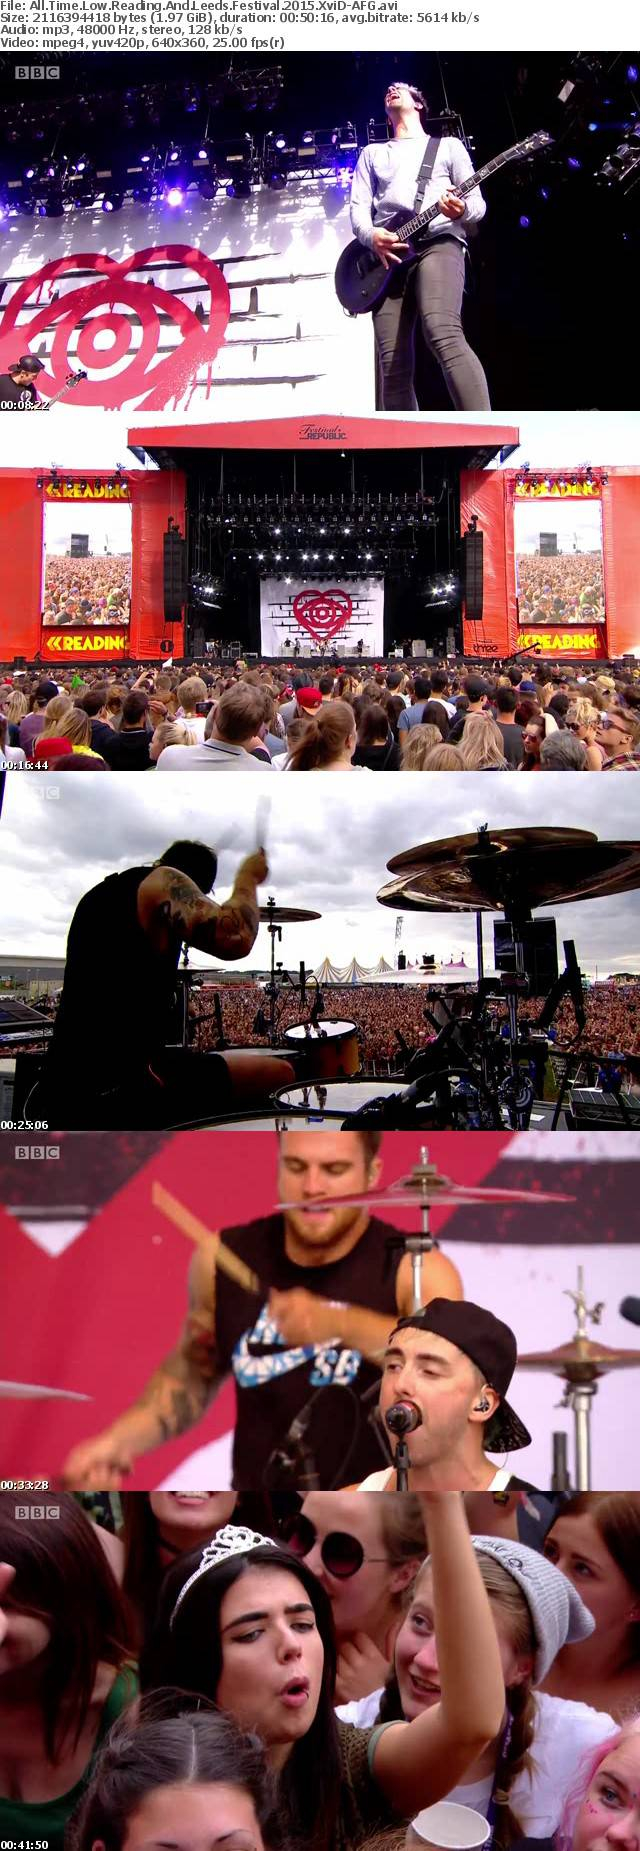 All Time Low Reading And Leeds Festival 2015 XviD-AFG